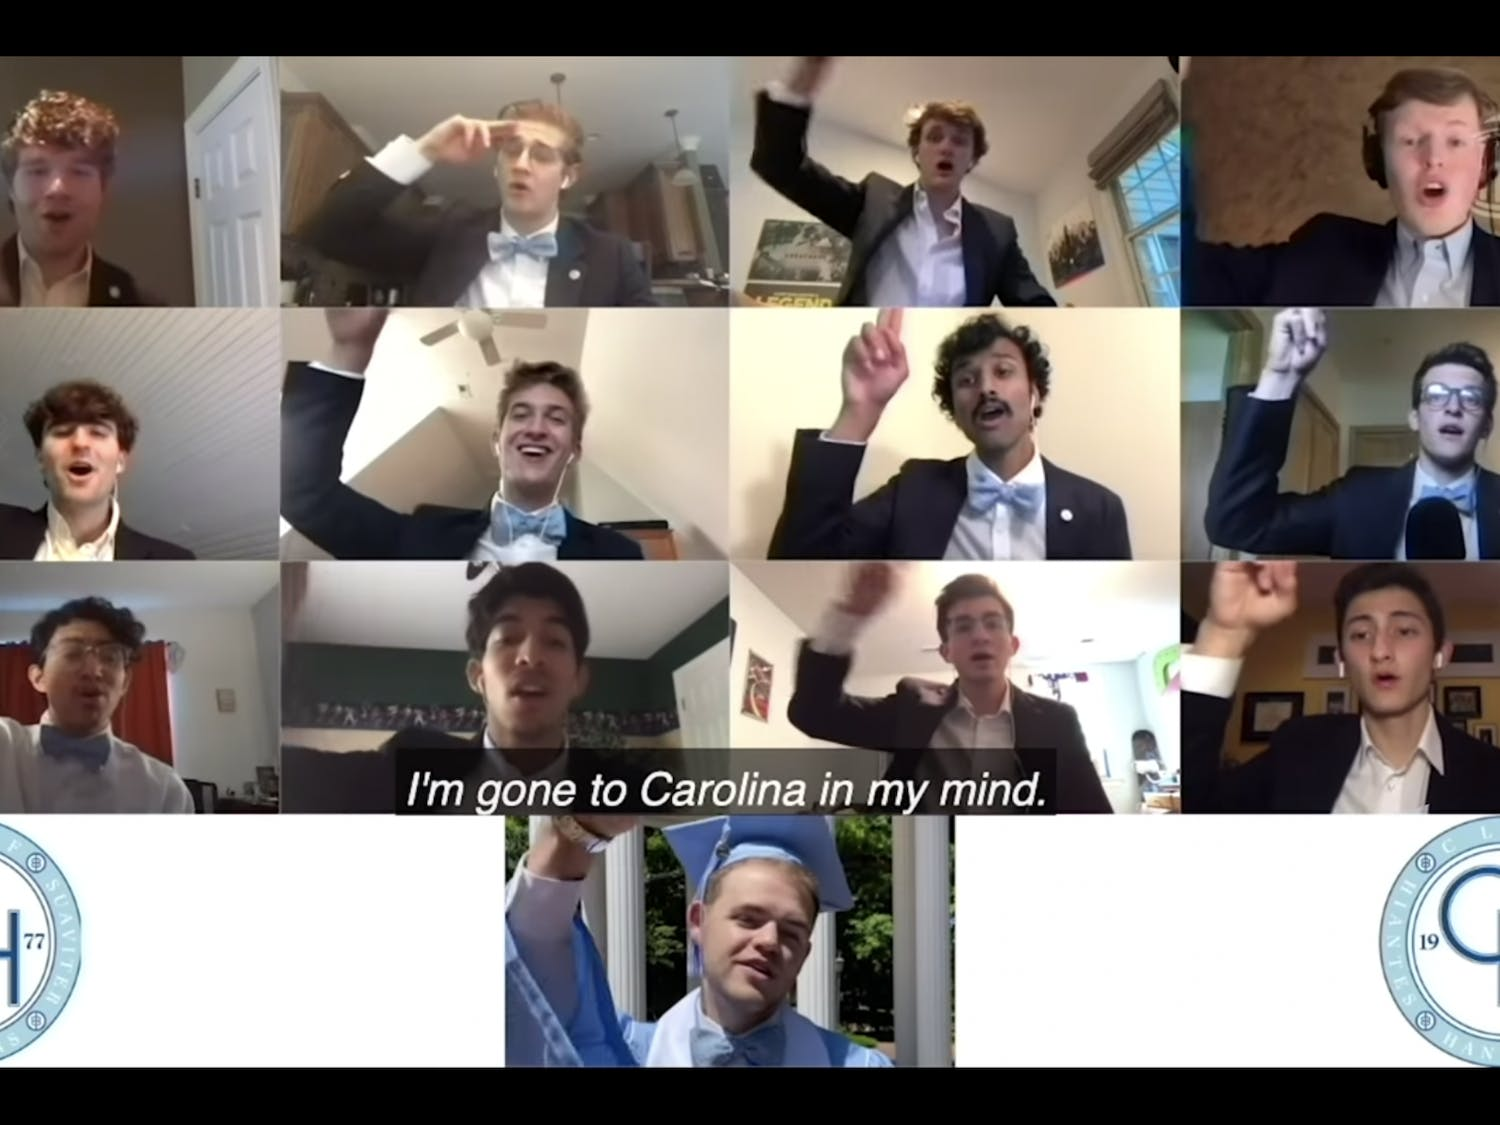 """The Clef Hangers, a UNC a capella group, perform """"Carolina in my Mind"""" for the Class of 2020 commencement ceremony. Due to the COVID-19 pandemic, the ceremony had to be held online, but some traditions such as performances by the a capella groups were still held."""